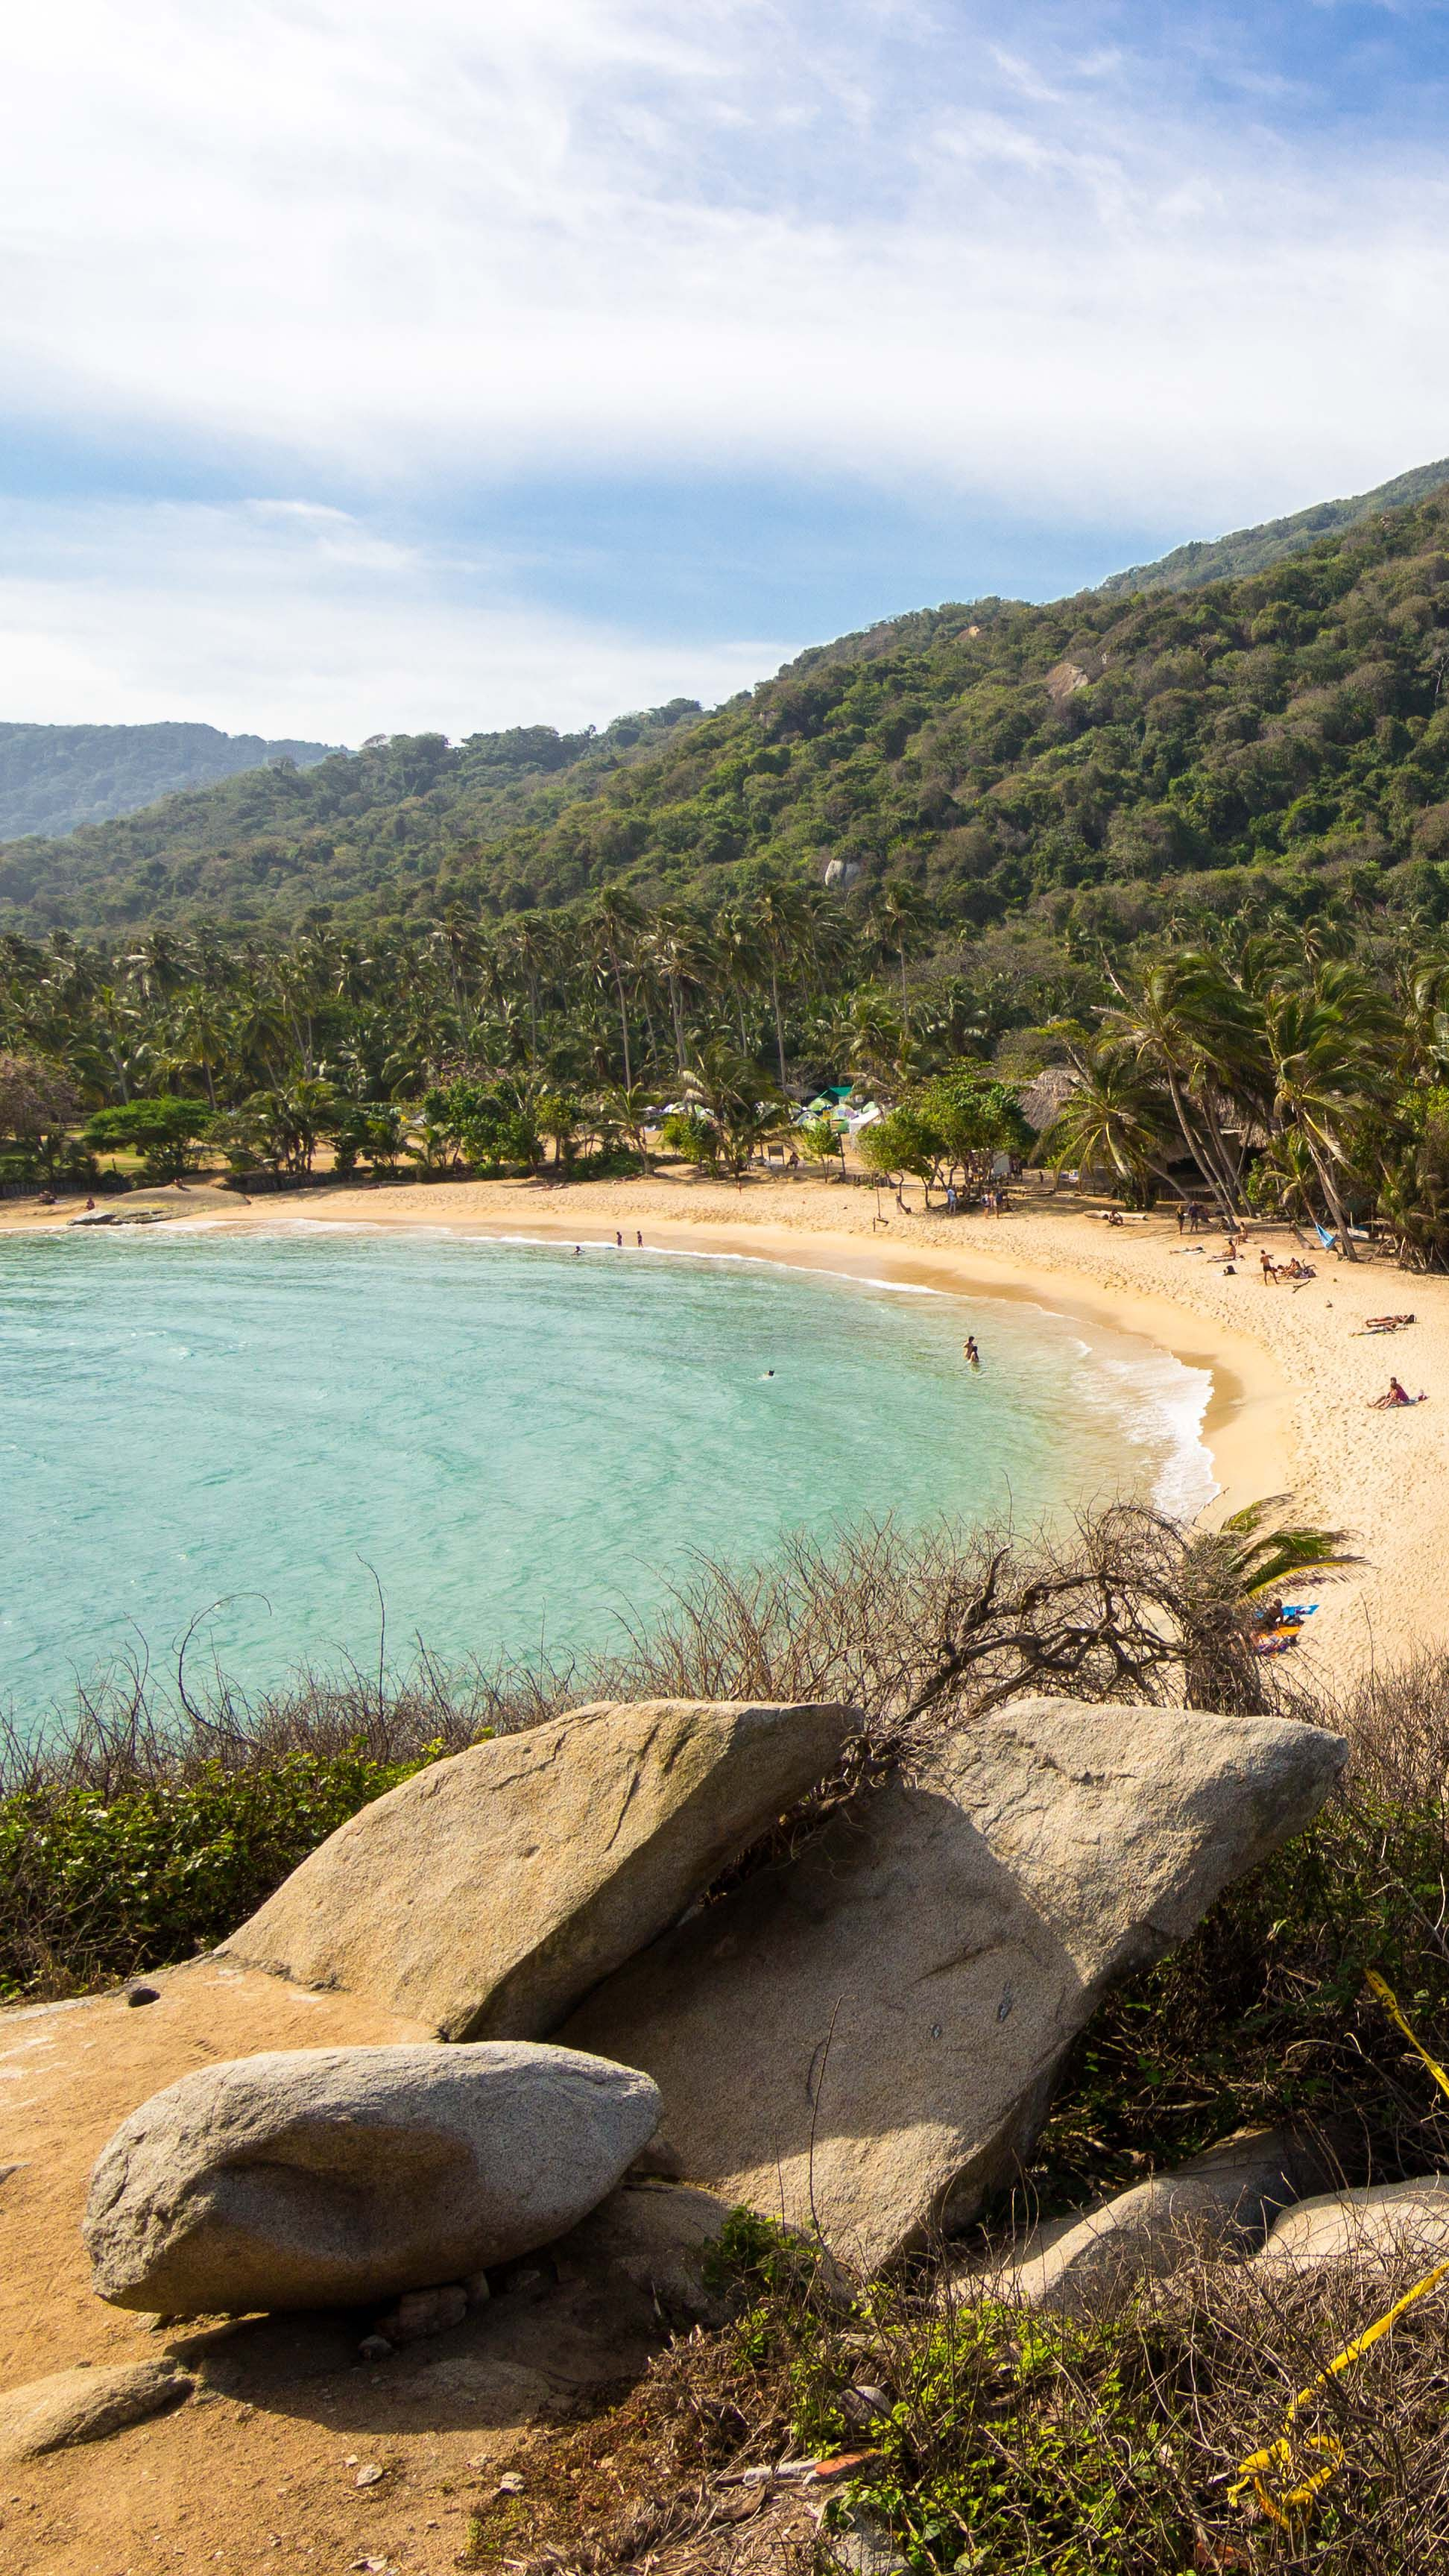 One of the fabulous beaches of Tayrona National Park, Colombia